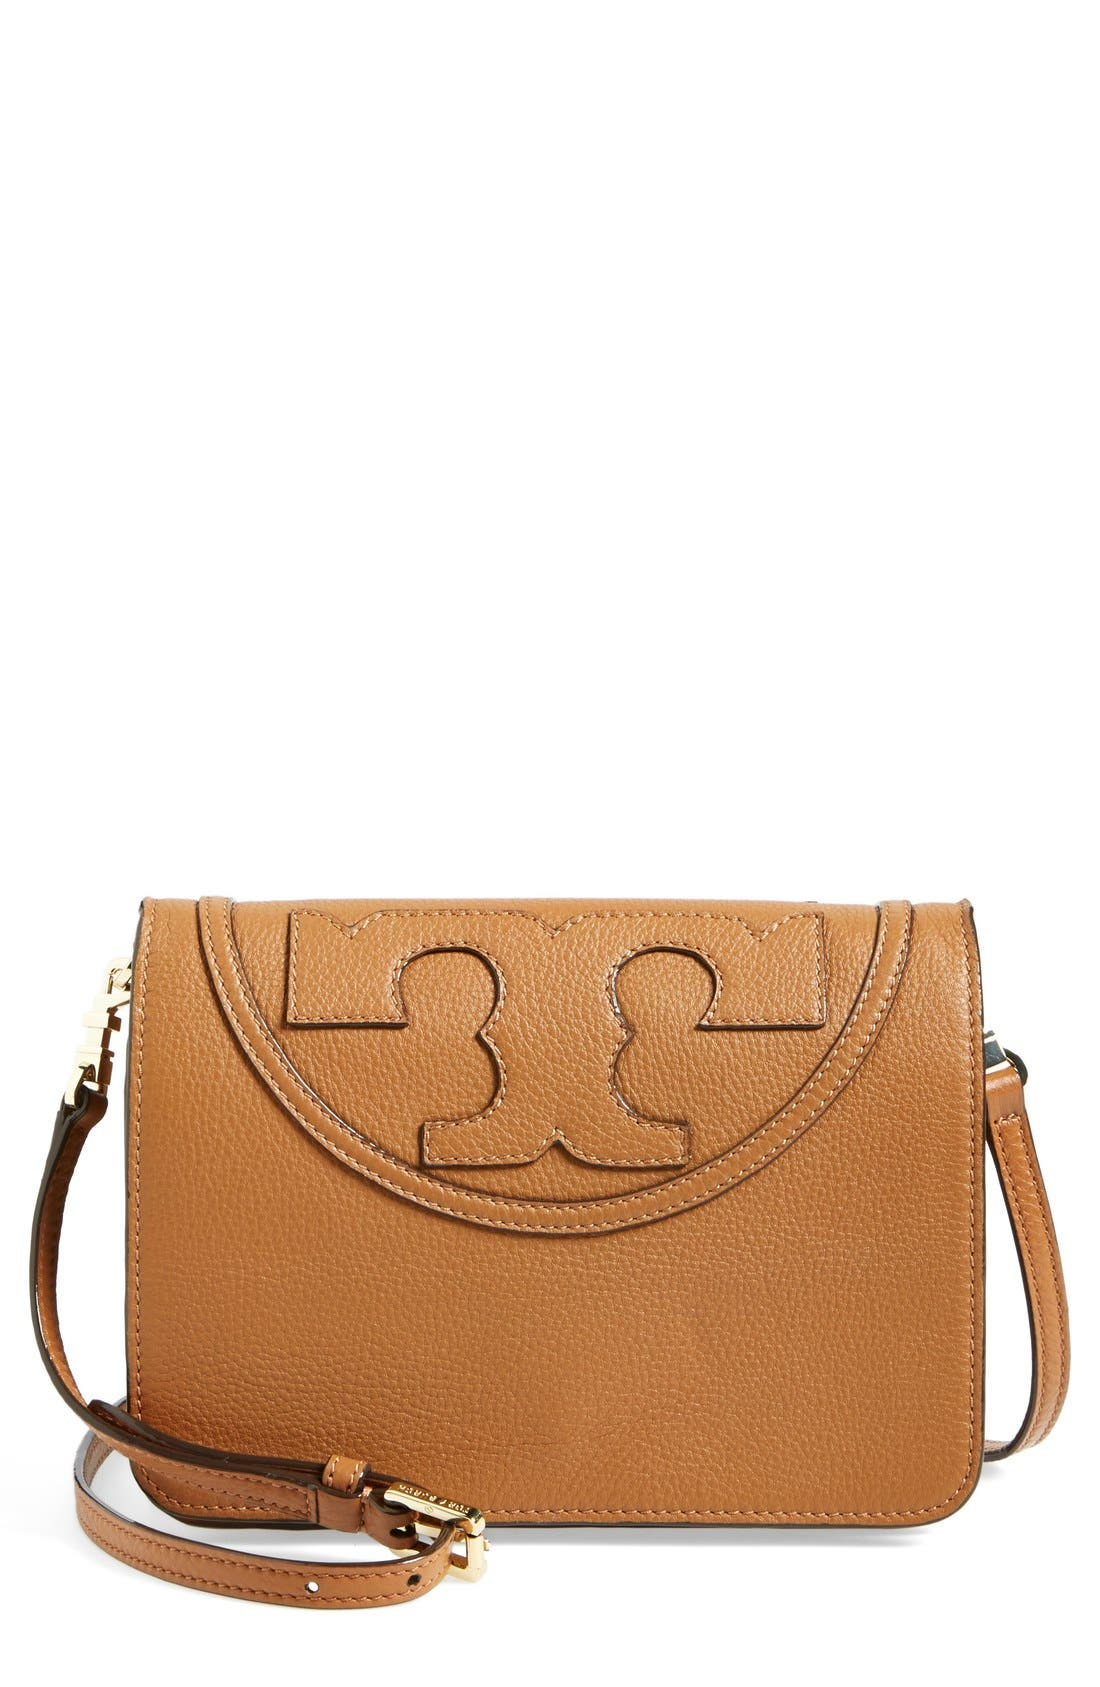 Main Image - Tory Burch 'All-T' Leather Crossbody Bag